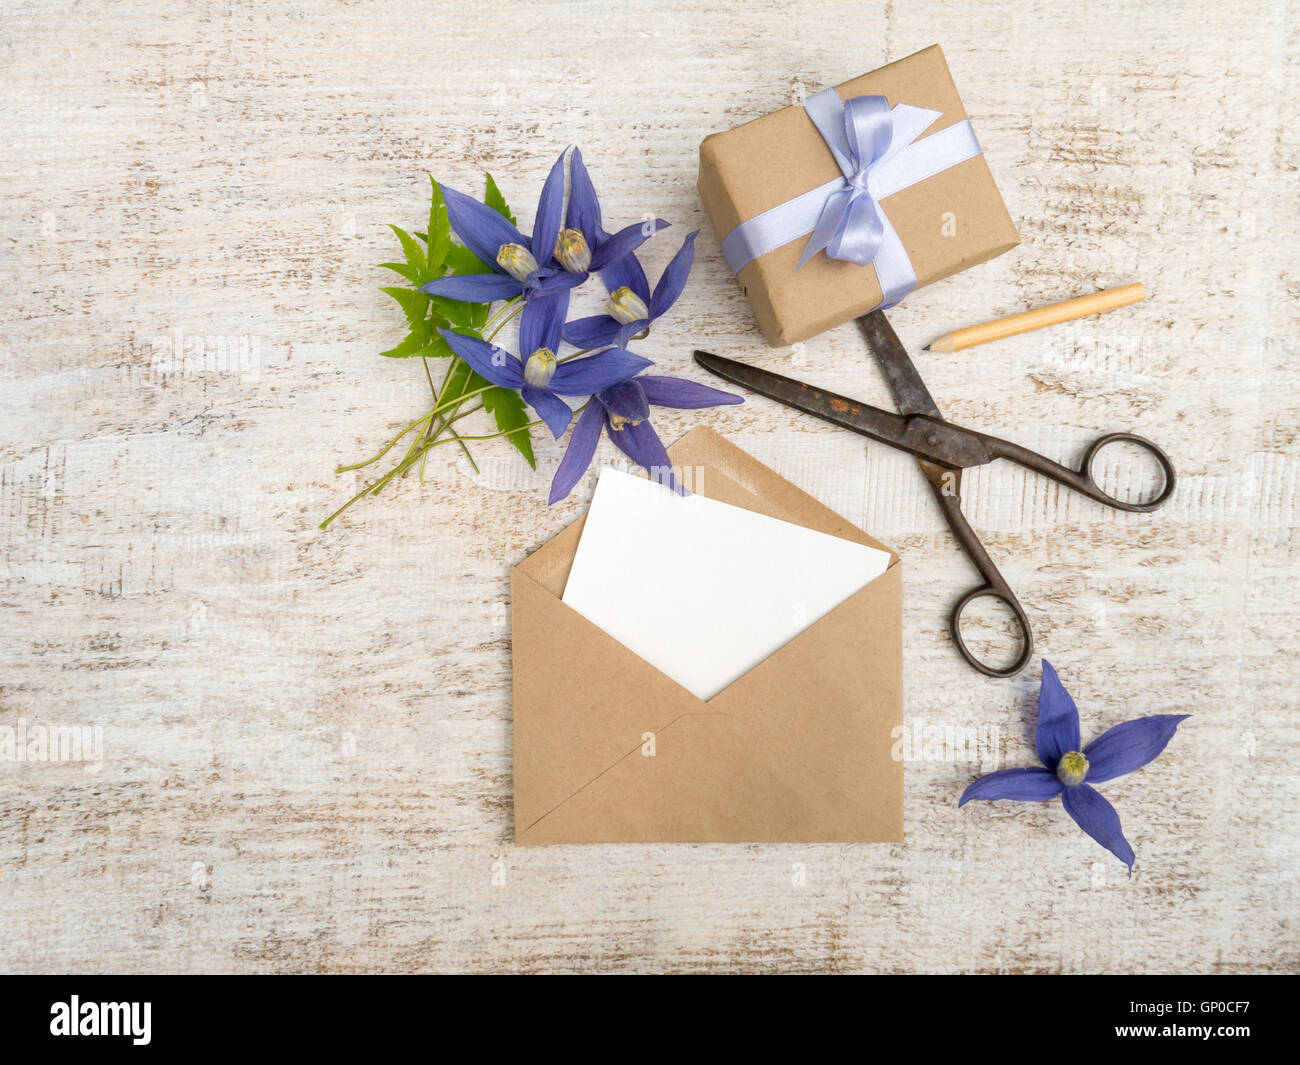 Gift Box Blue Flowers And Envelope With Greeting Card On The Wooden Painted Board